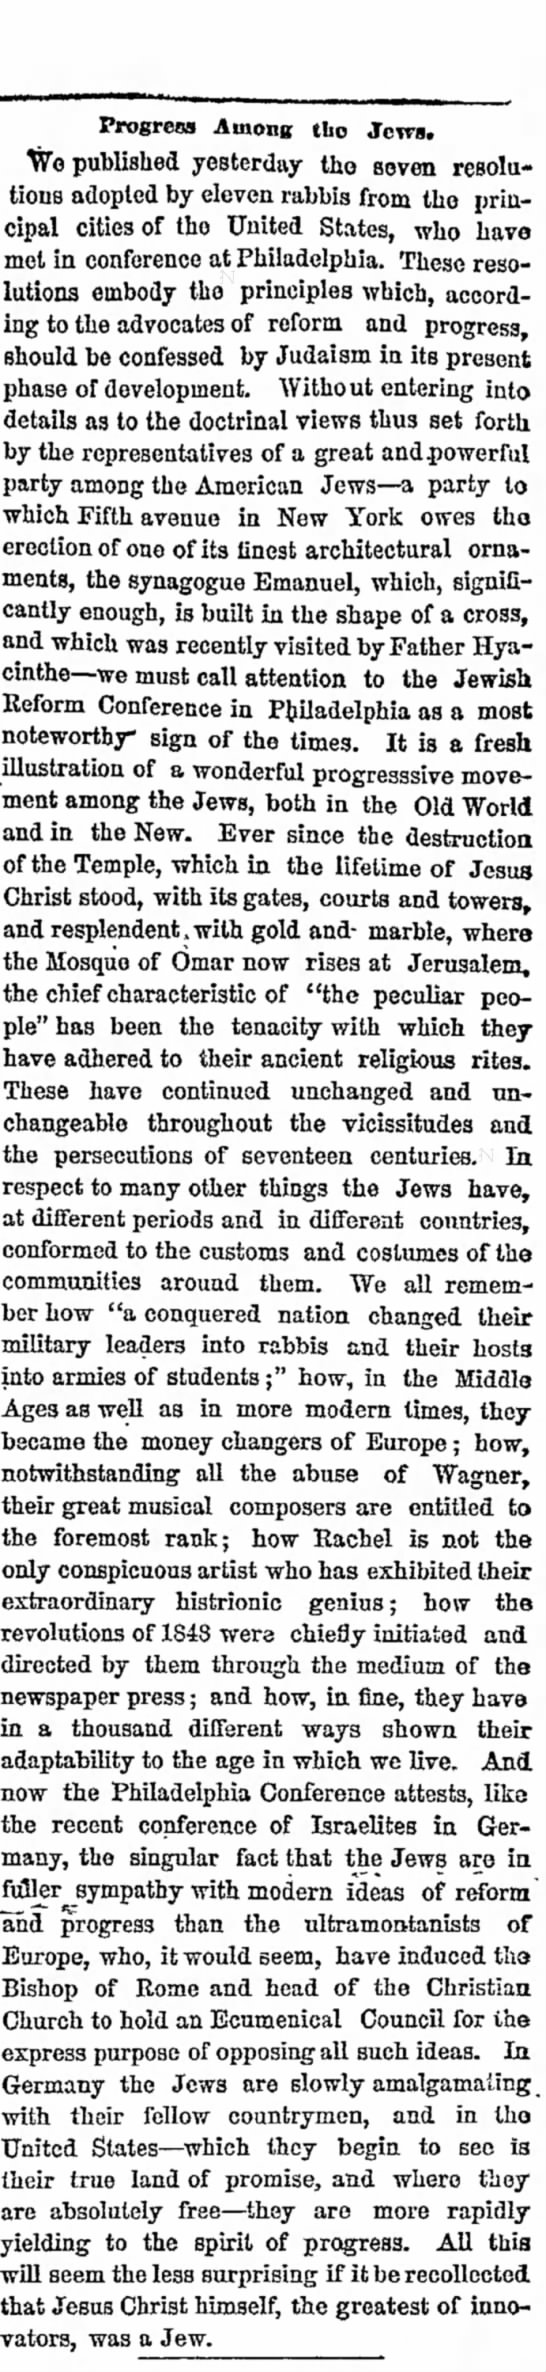 1869 Article on the Jews